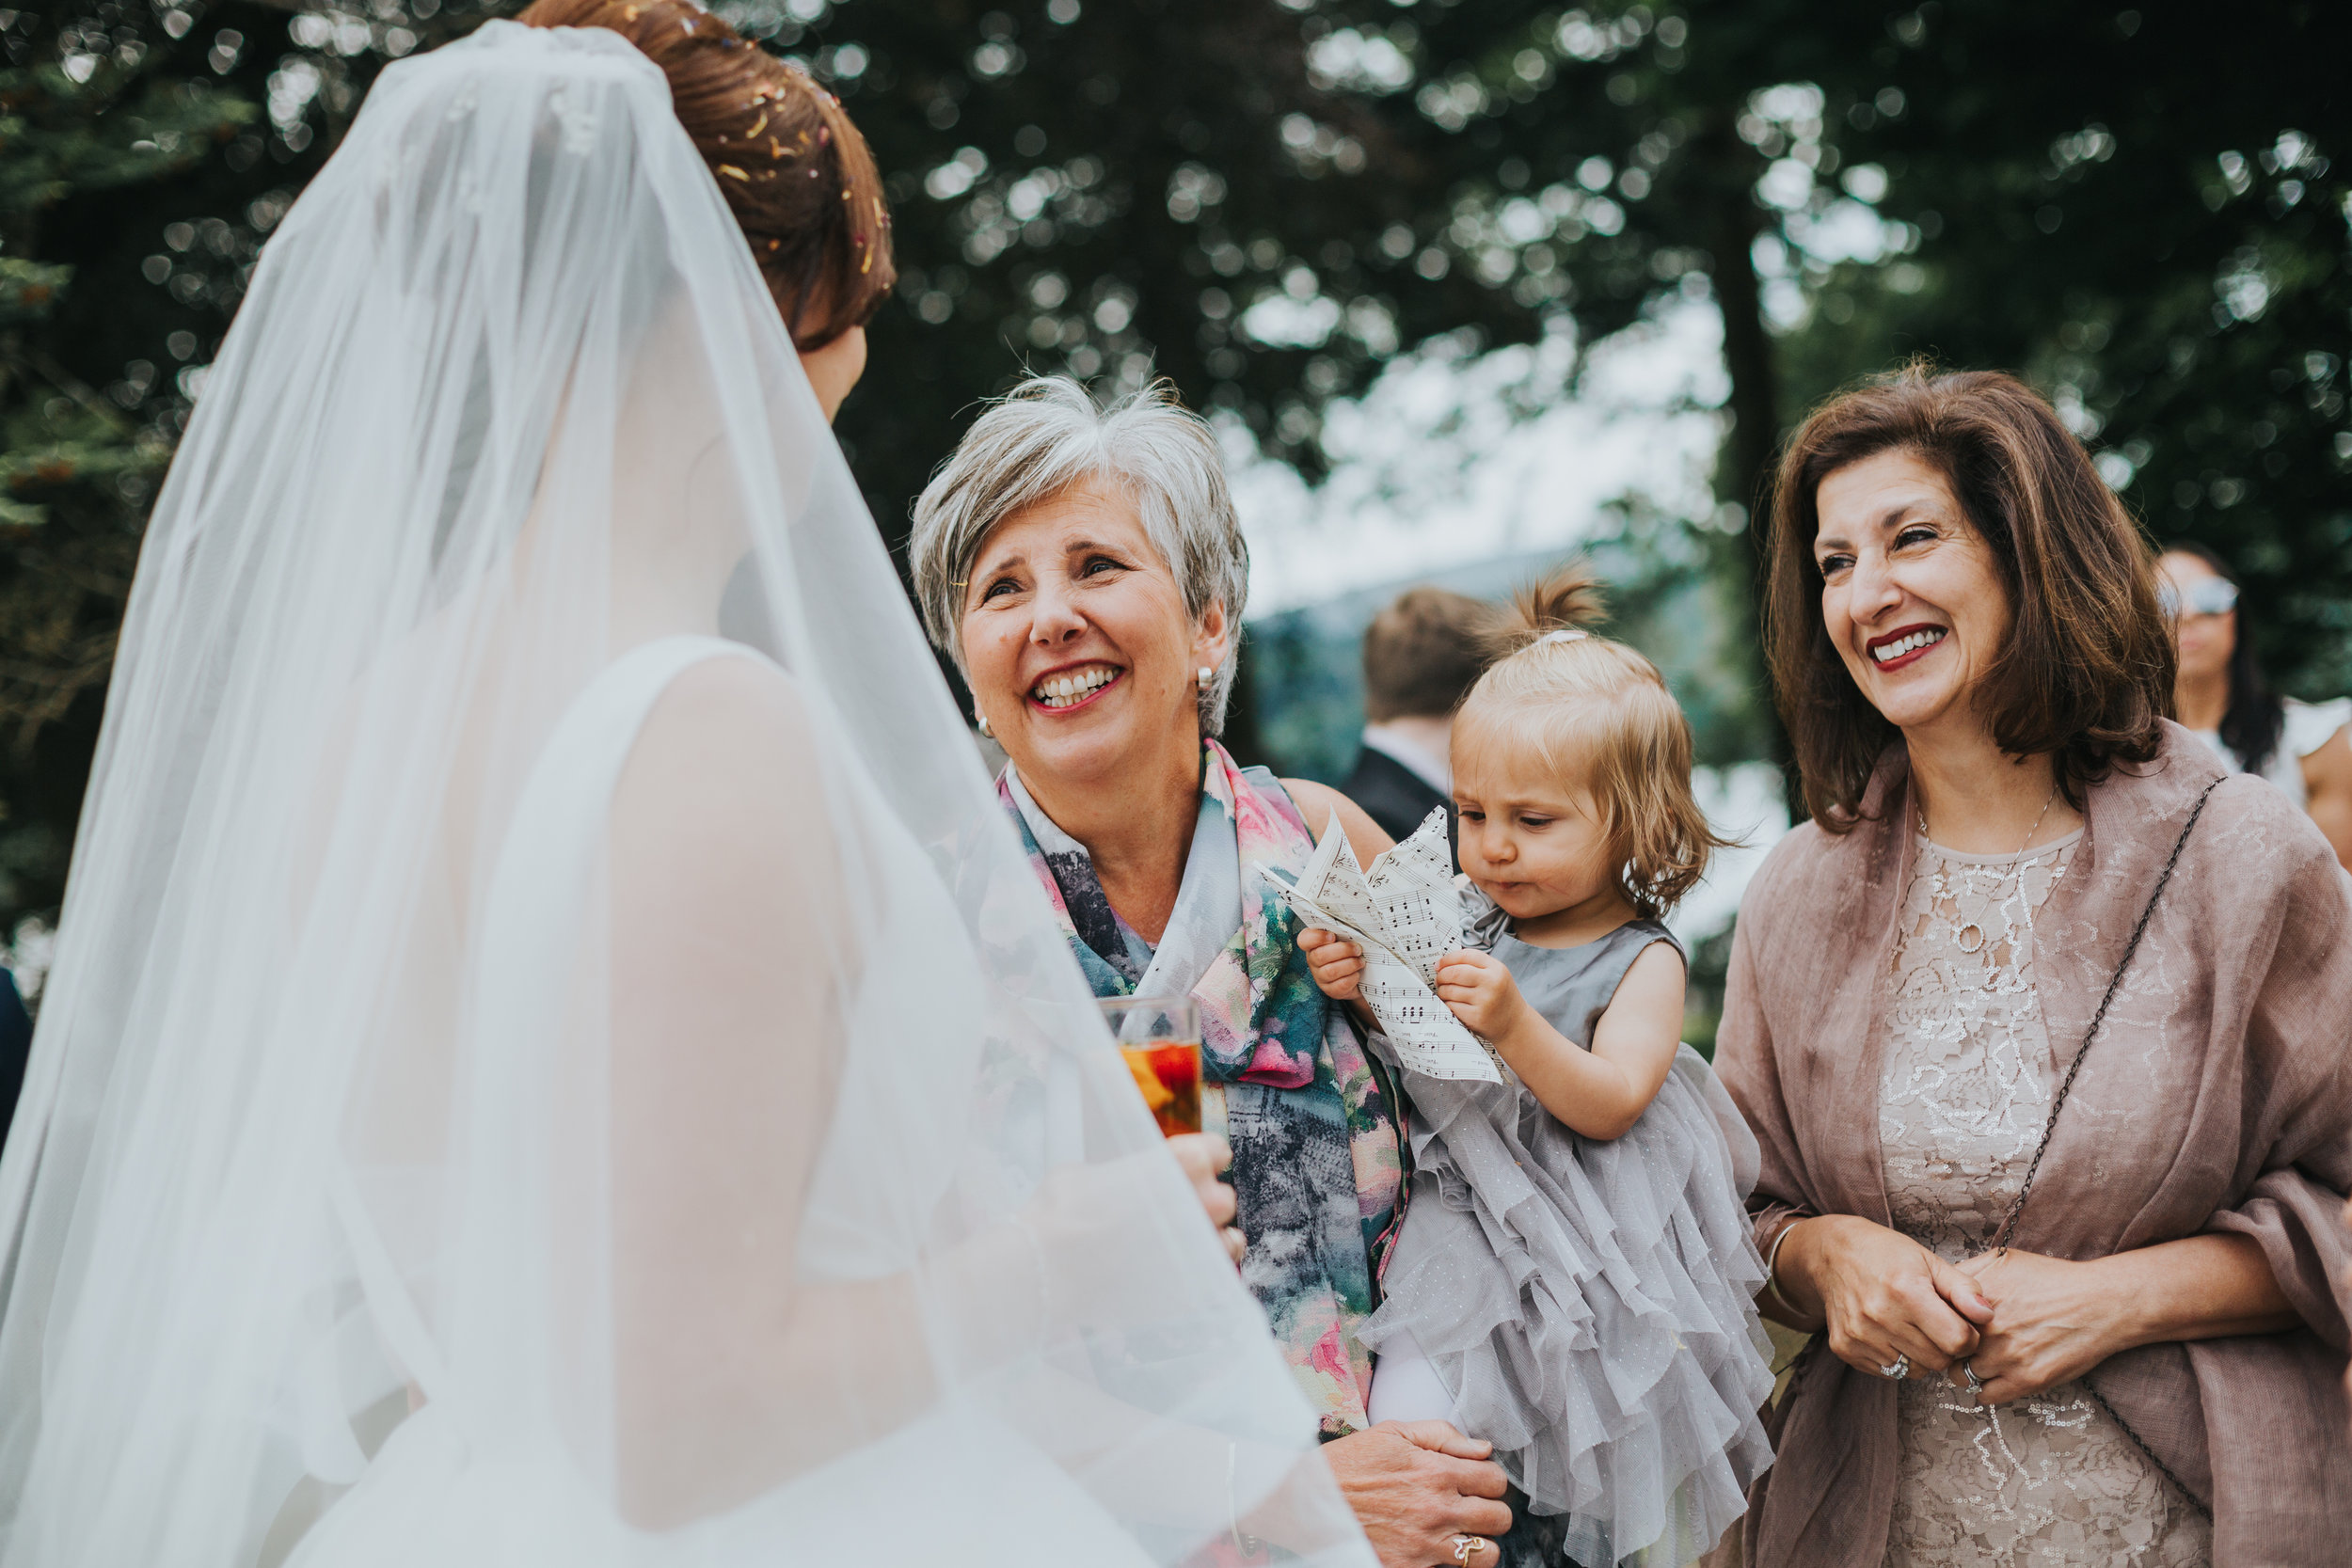 Bride greets smiling wedding guests holding a baby.